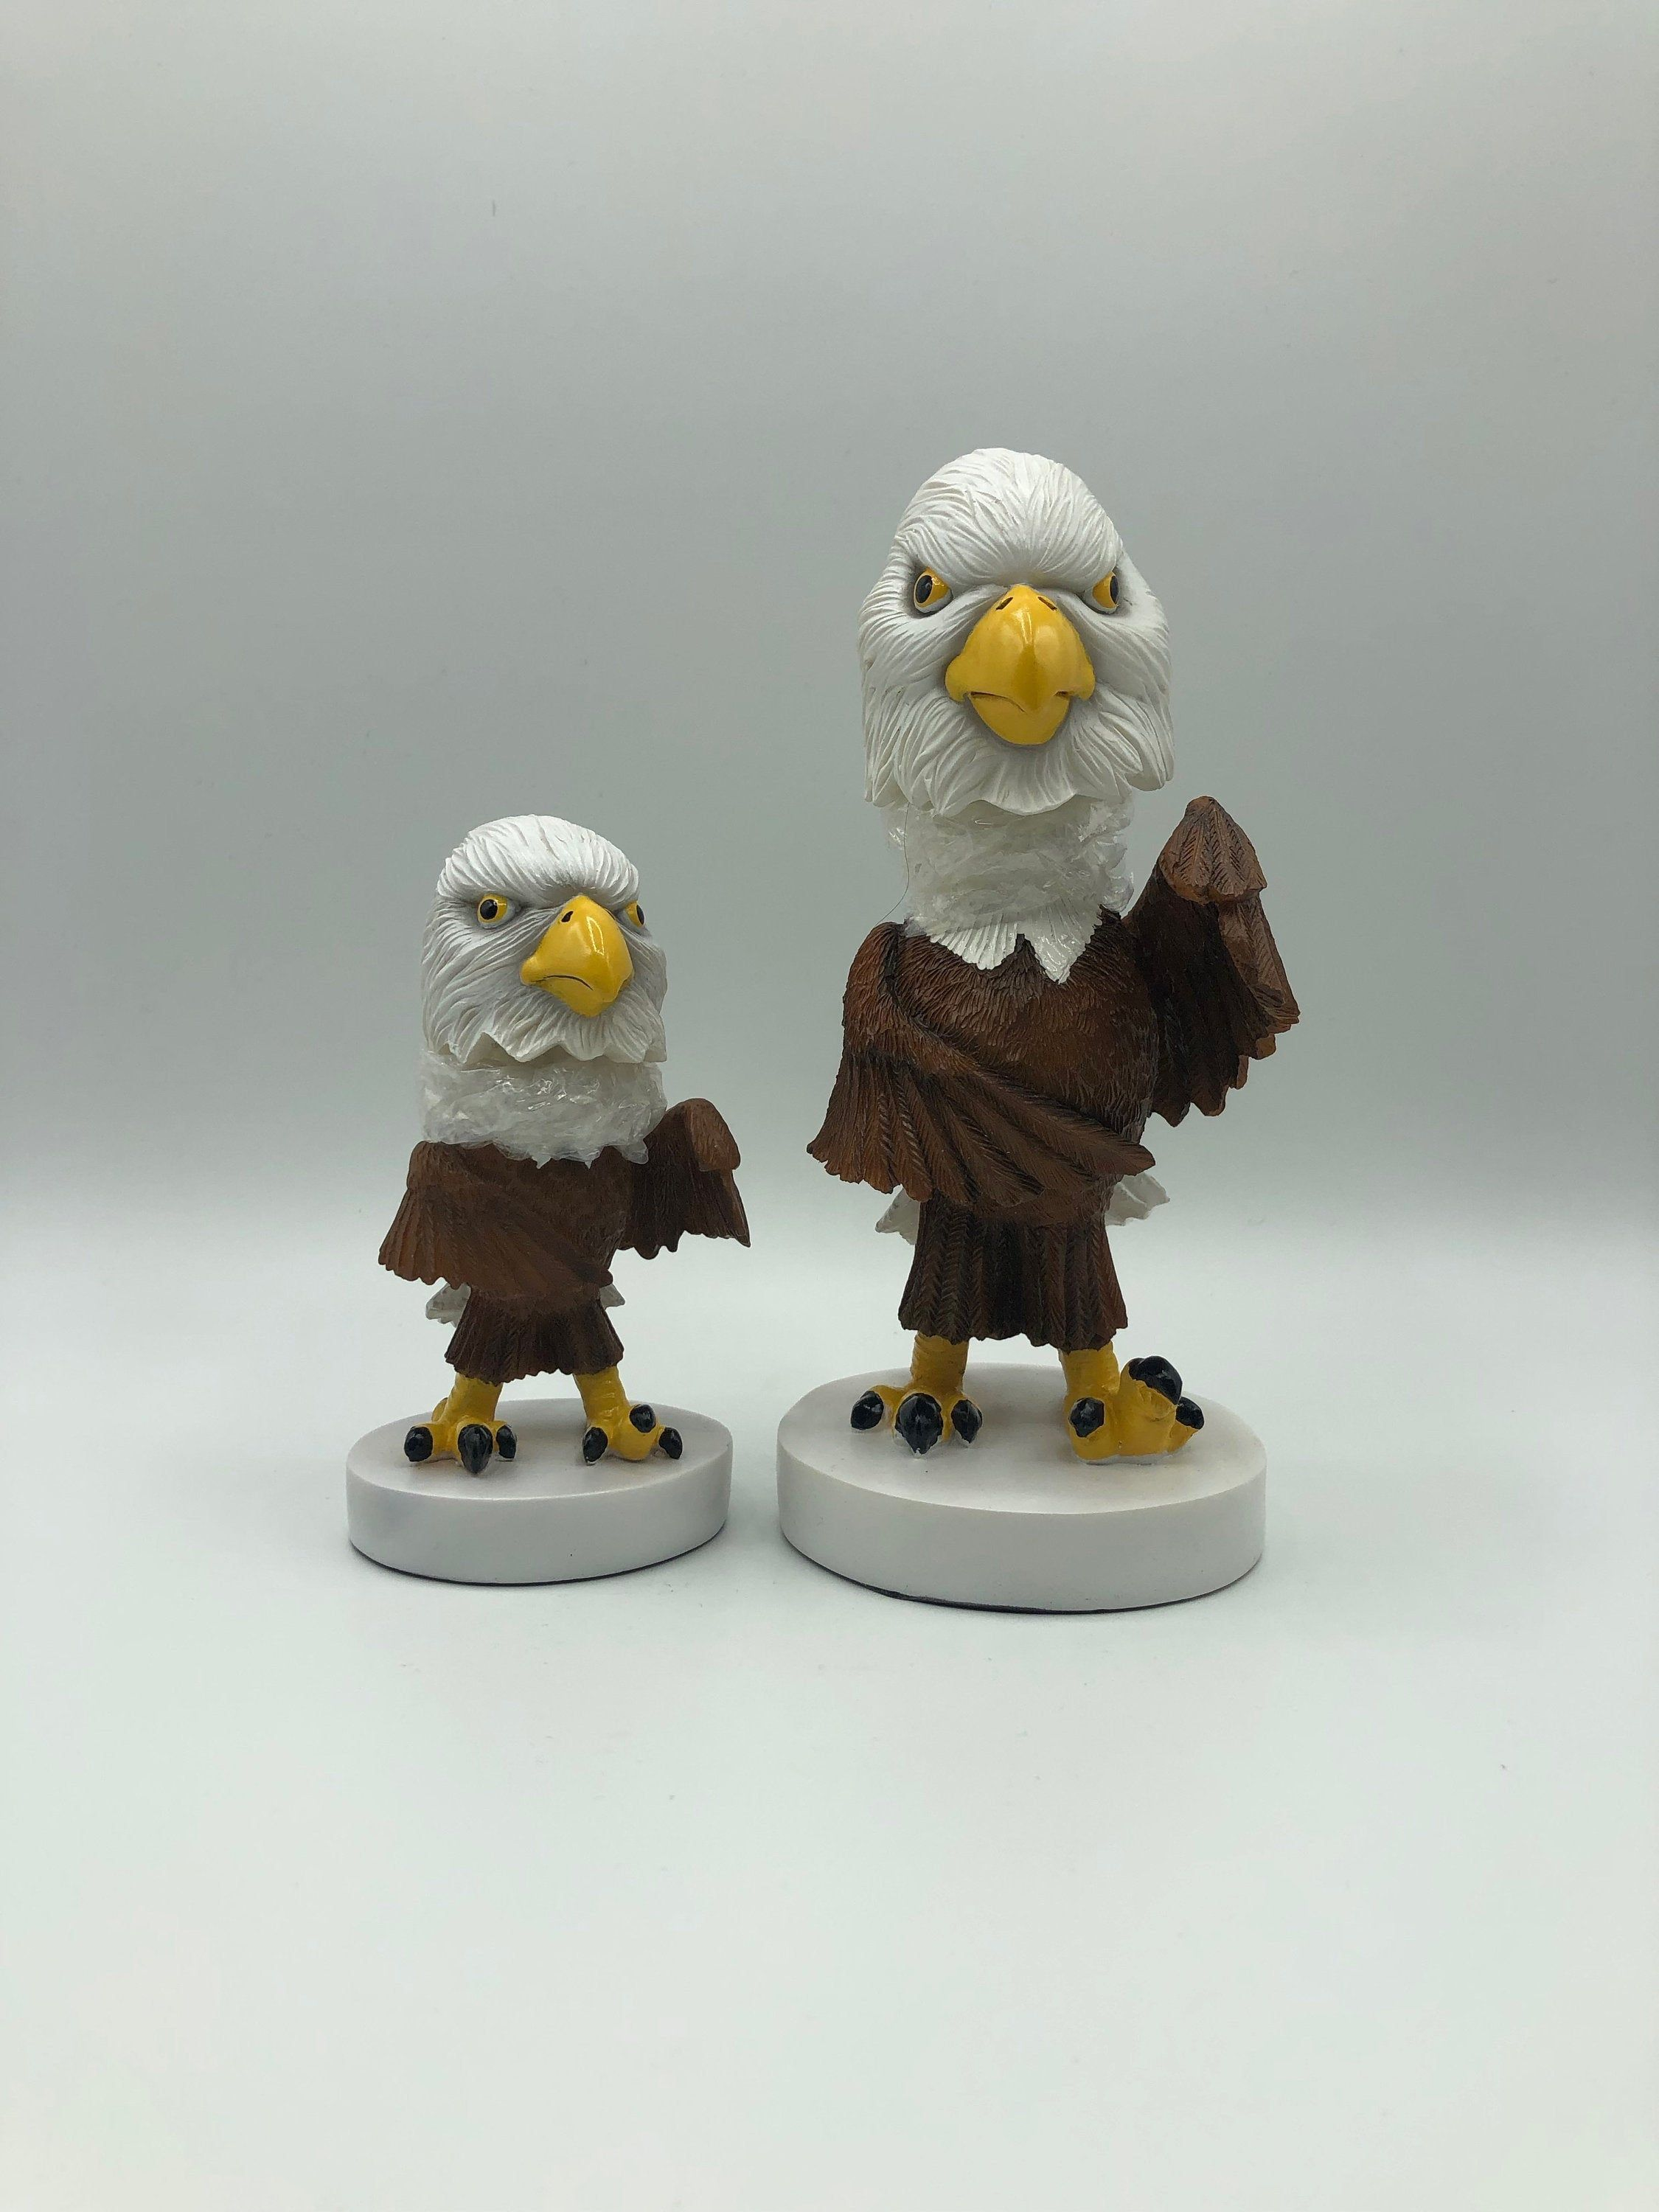 Bald Eagle Bobble Head Statues Set of 2 Eagles Eaglet Sculptures Figurines Collectible Eagle Mascot Bobbleheads USA Patriotic Knick Knack #knickknack